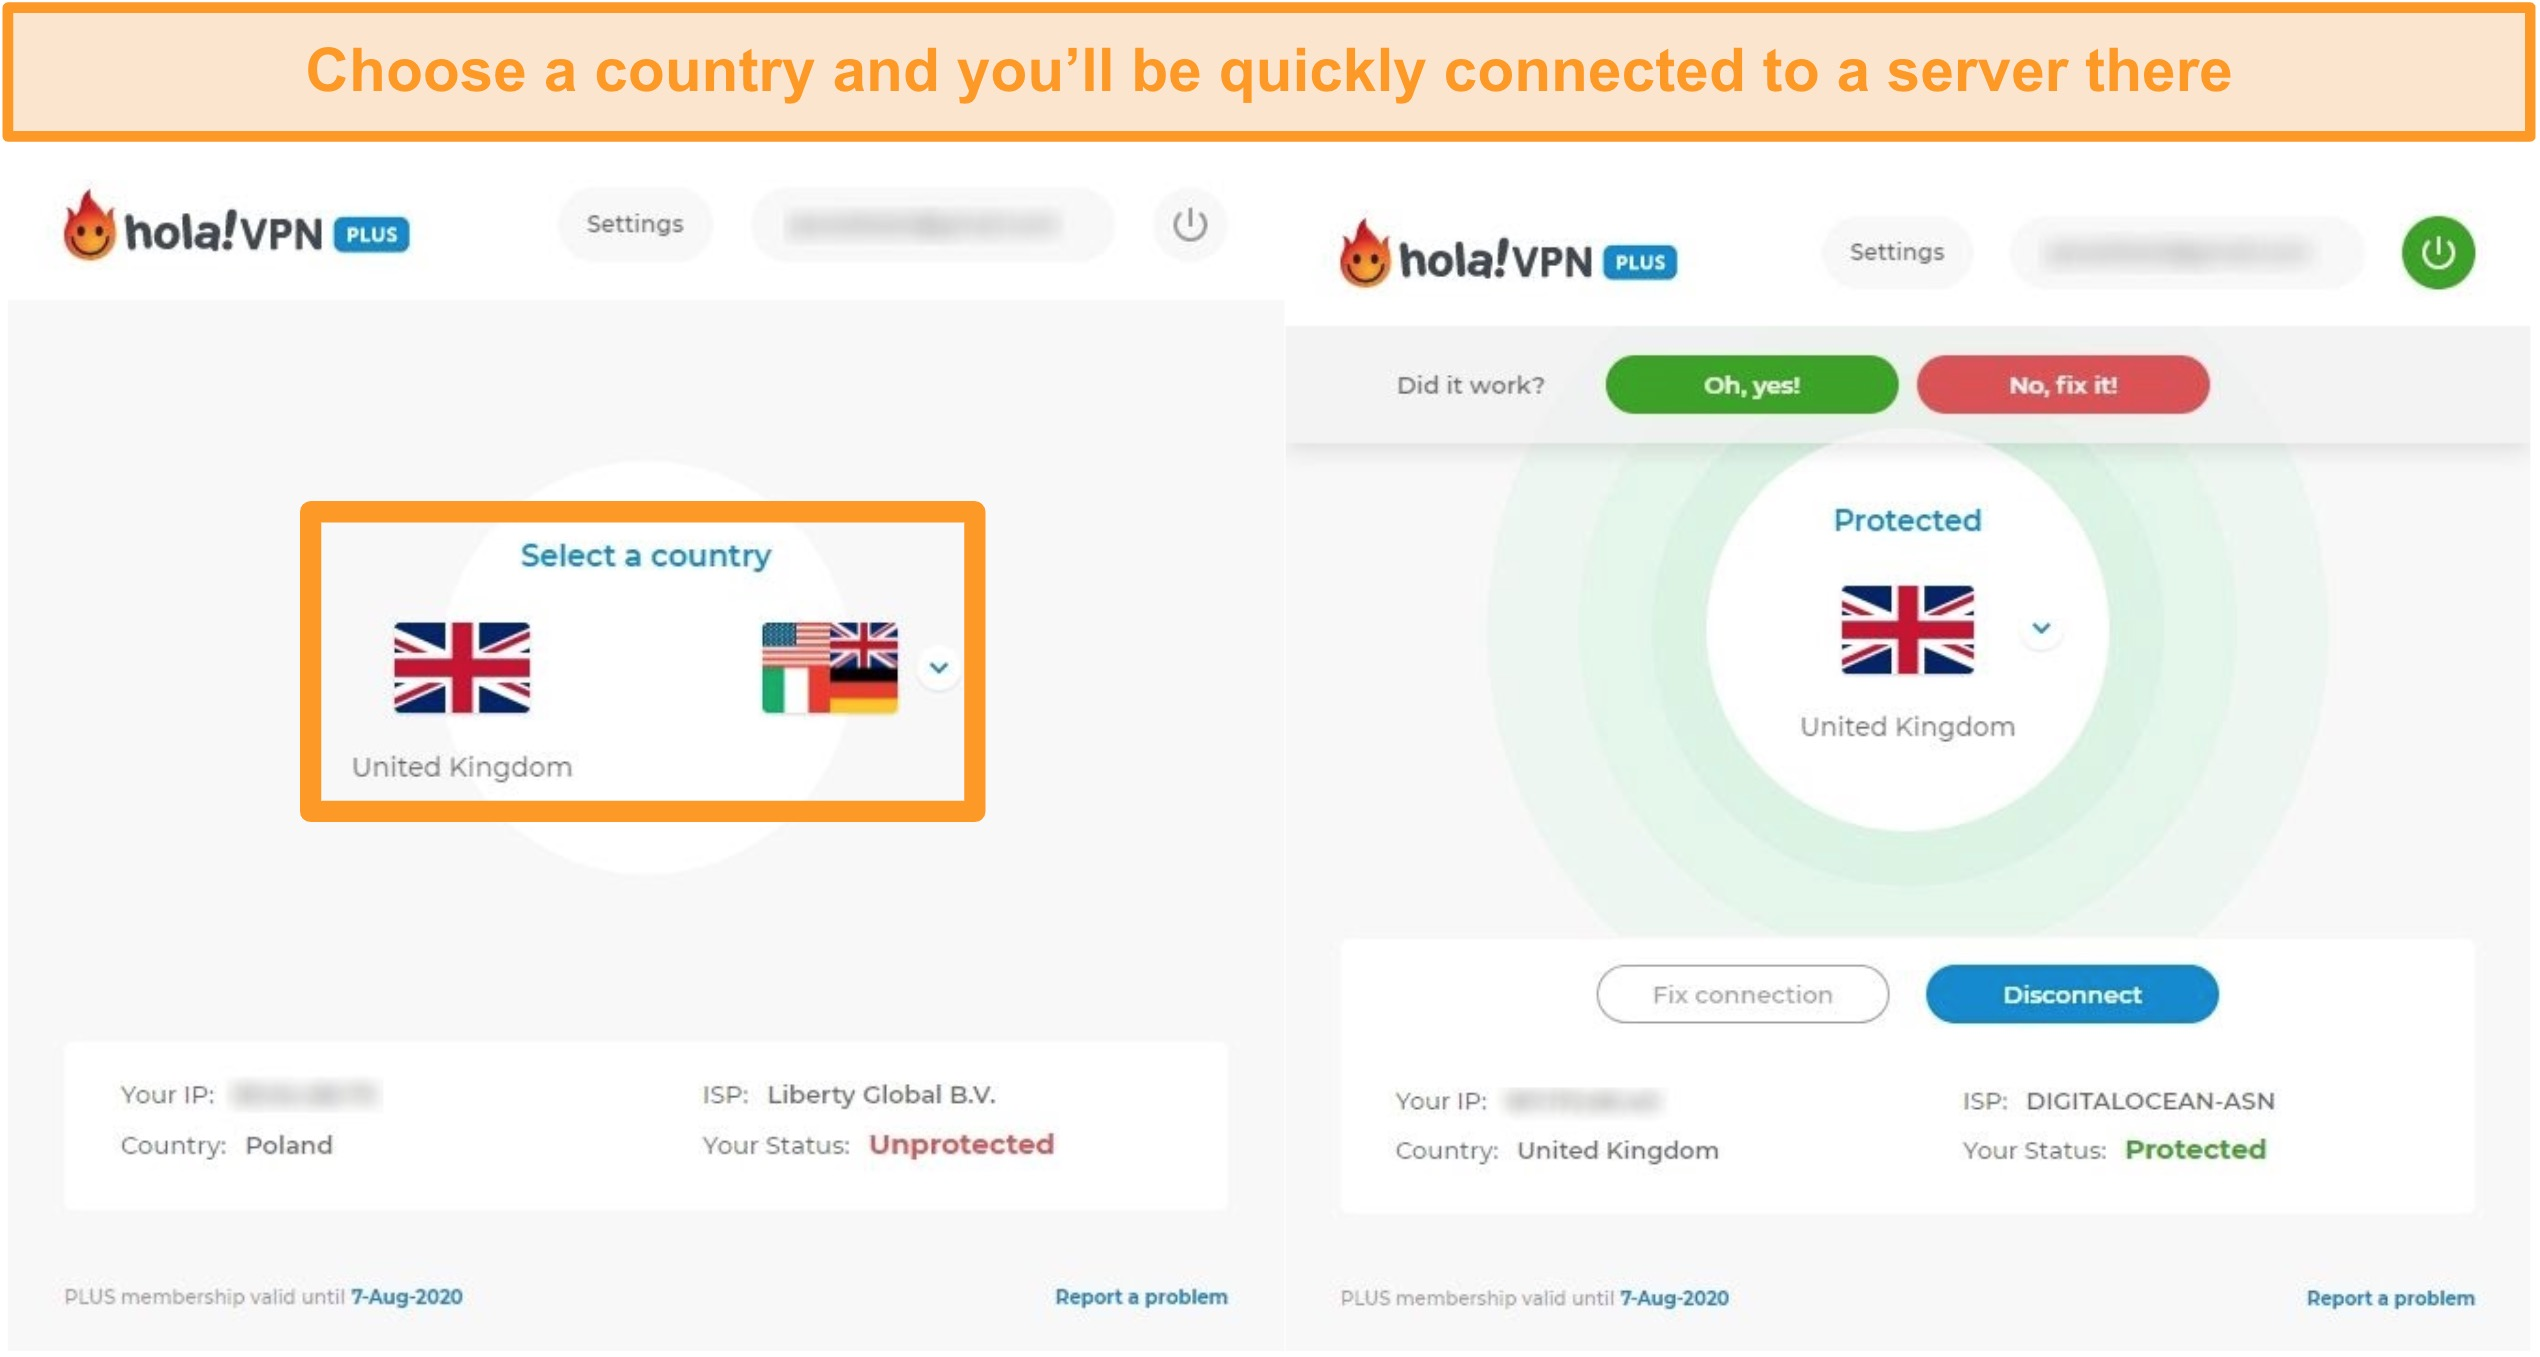 Screenshots showing how to connect to a specific country's server in Hola VPN.